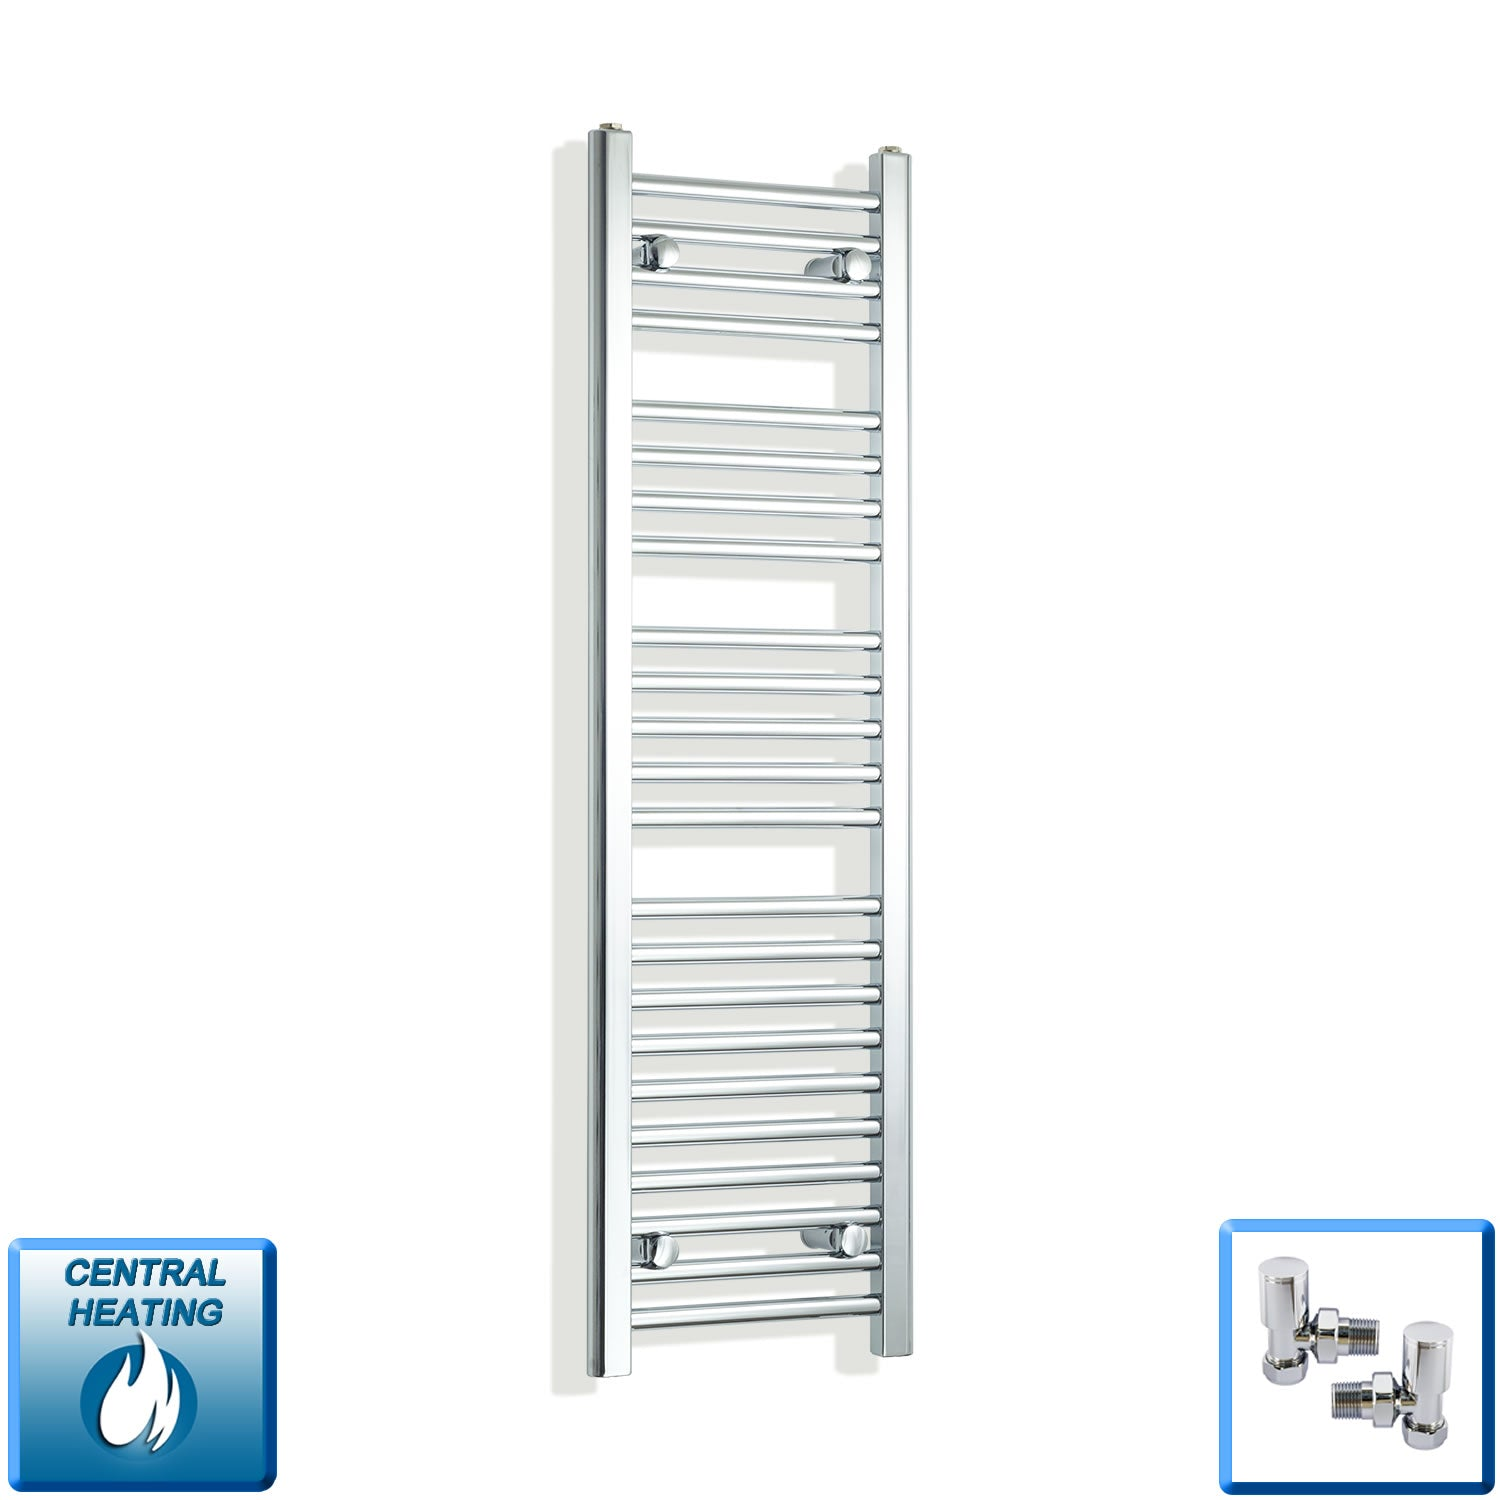 350mm Wide 1200mm High Chrome Towel Rail Radiator With Angled Valve